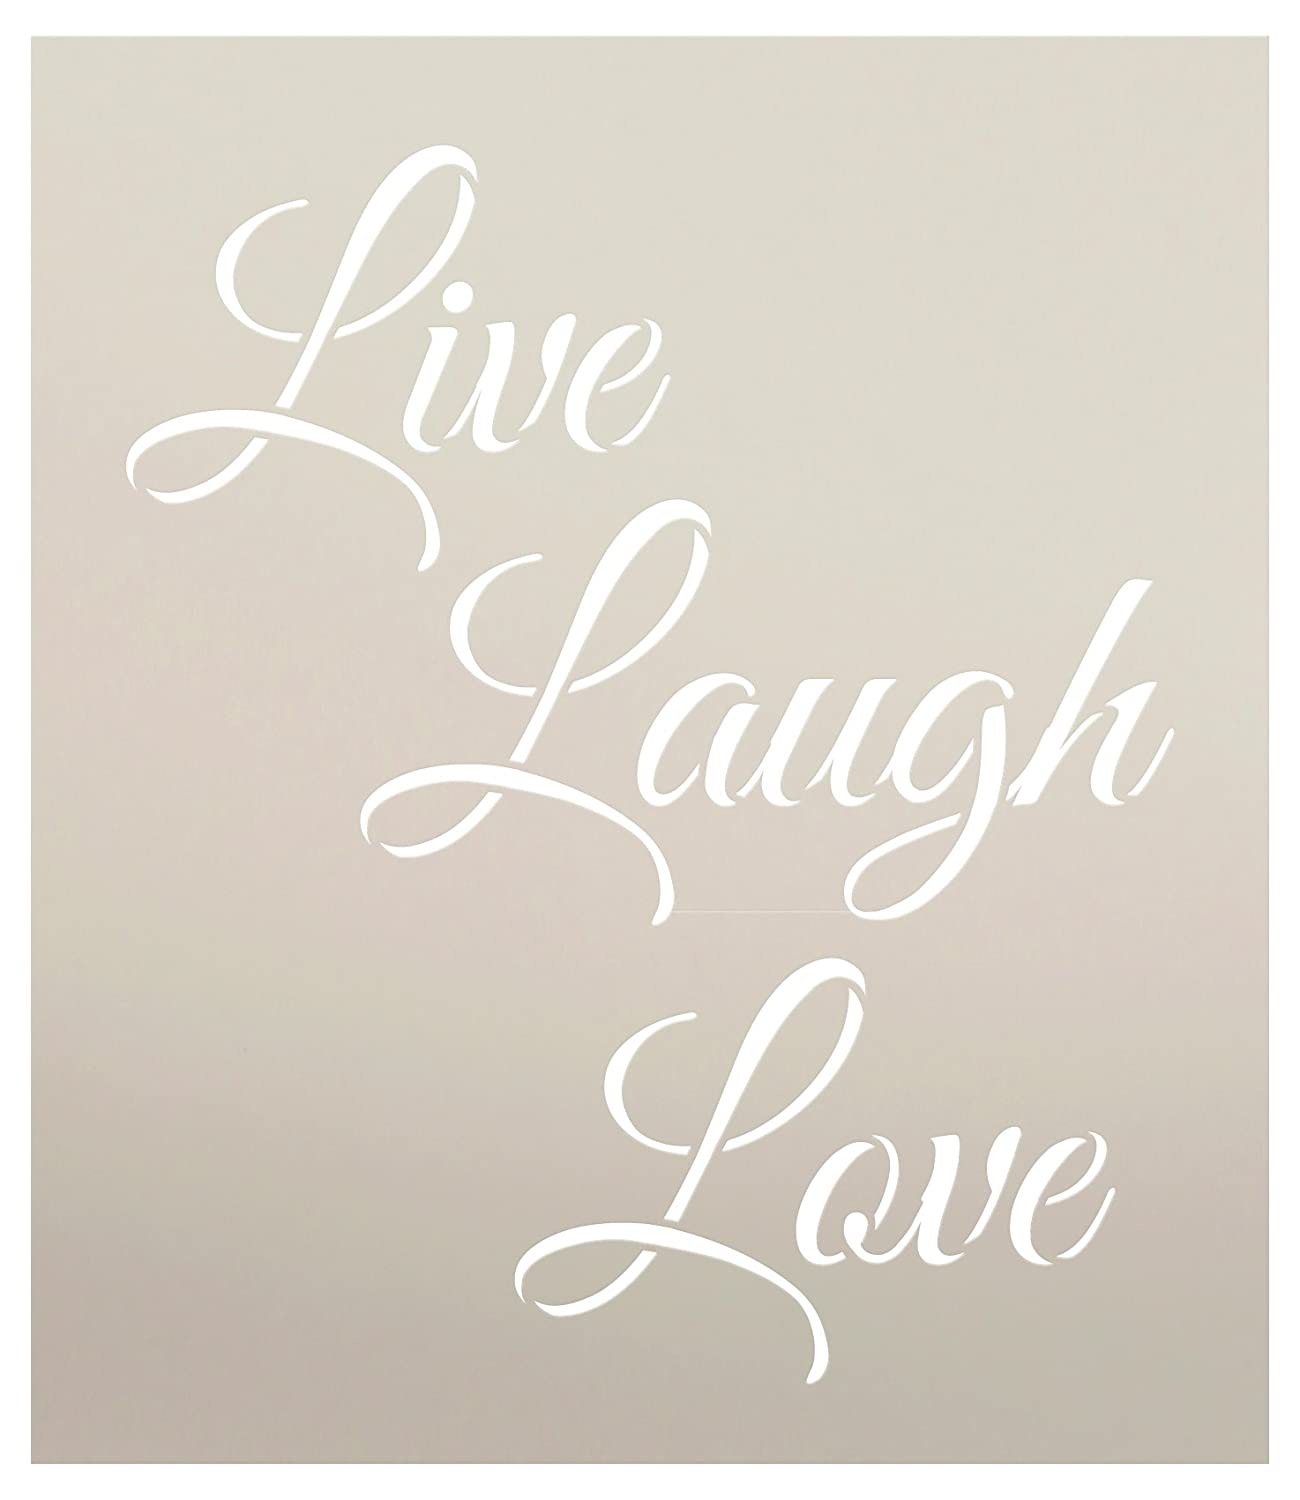 Live Laugh Love Stencil by StudioR12 | Trendy Inspirational Word Art - Reusable Mylar Template | Painting, Chalk, Mixed Media | Use for Wall Art, DIY Home Decor - STCL1193 - SELECT SIZE (9.5 x 11) Studio R 12